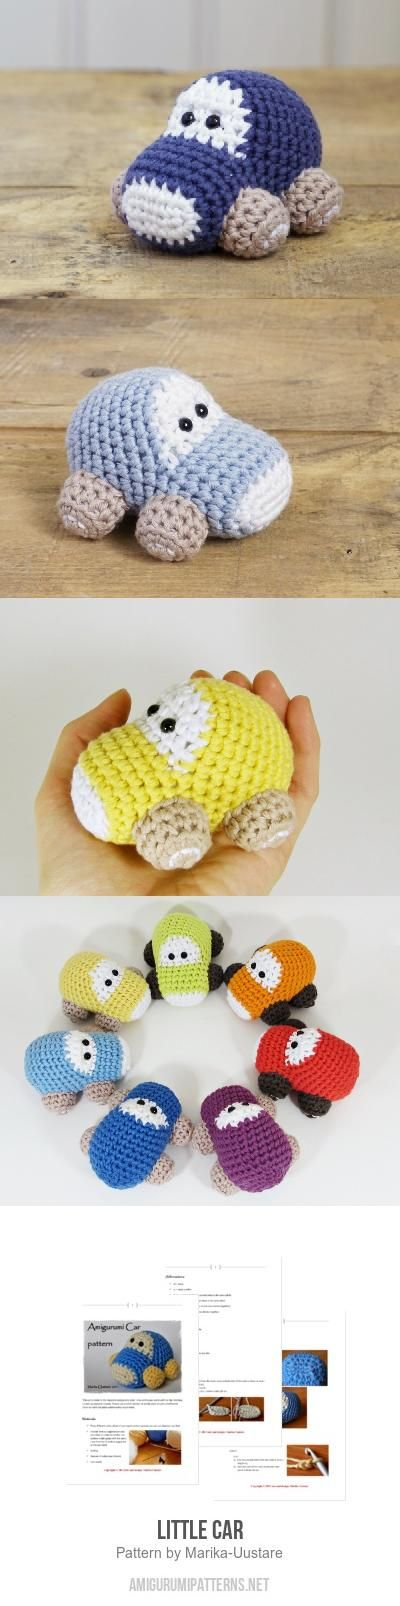 Little car amigurumi pattern